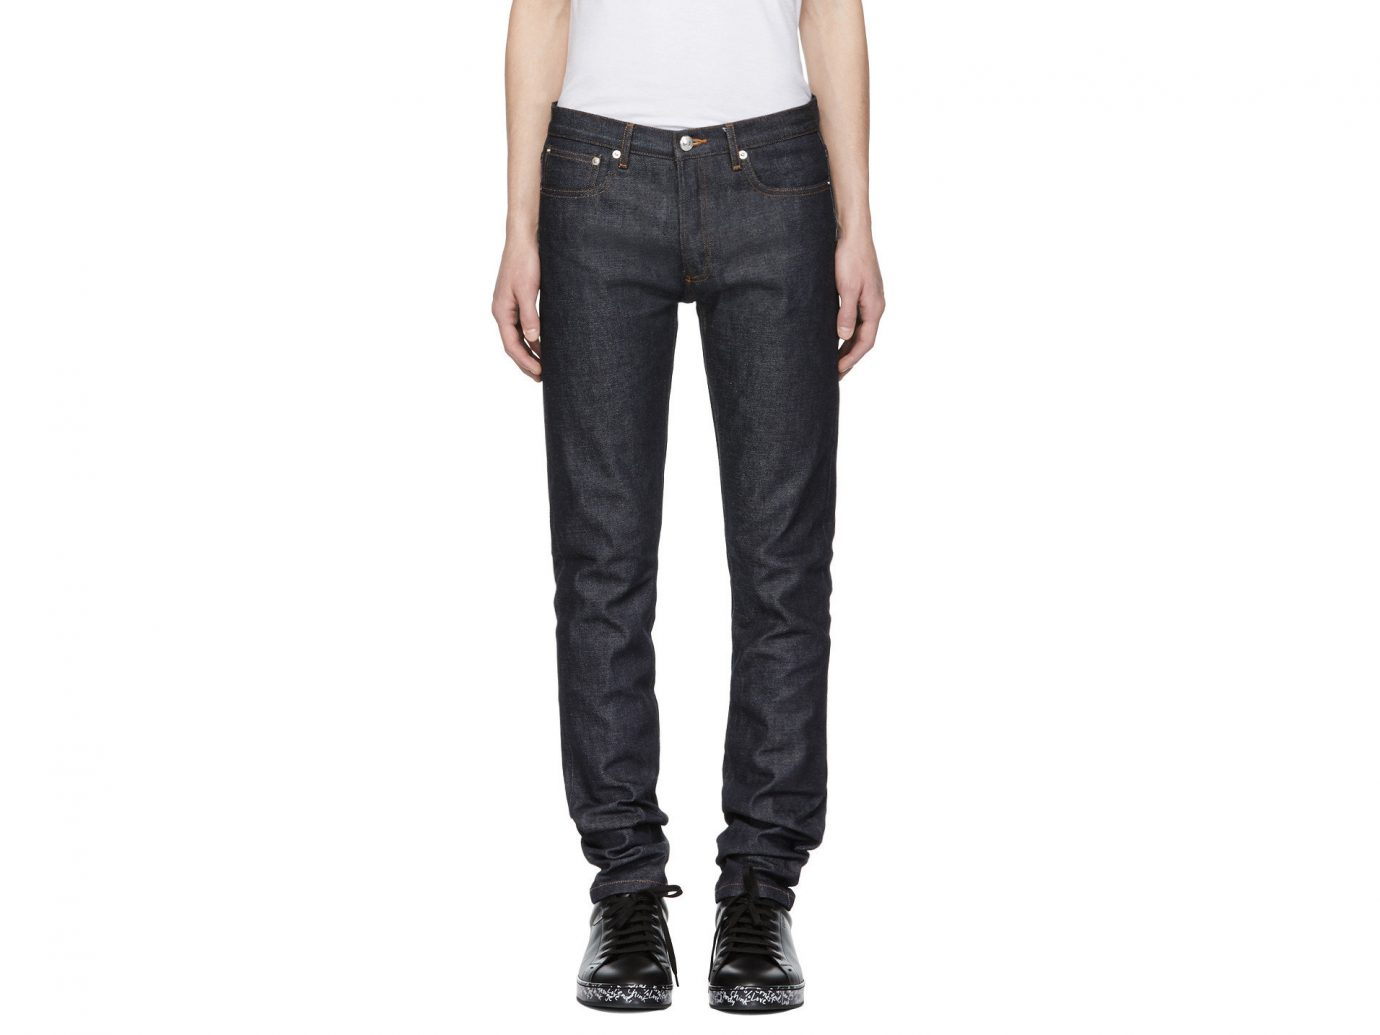 Style + Design Travel Shop clothing person jeans denim standing trouser wearing posing pocket trousers suit waist